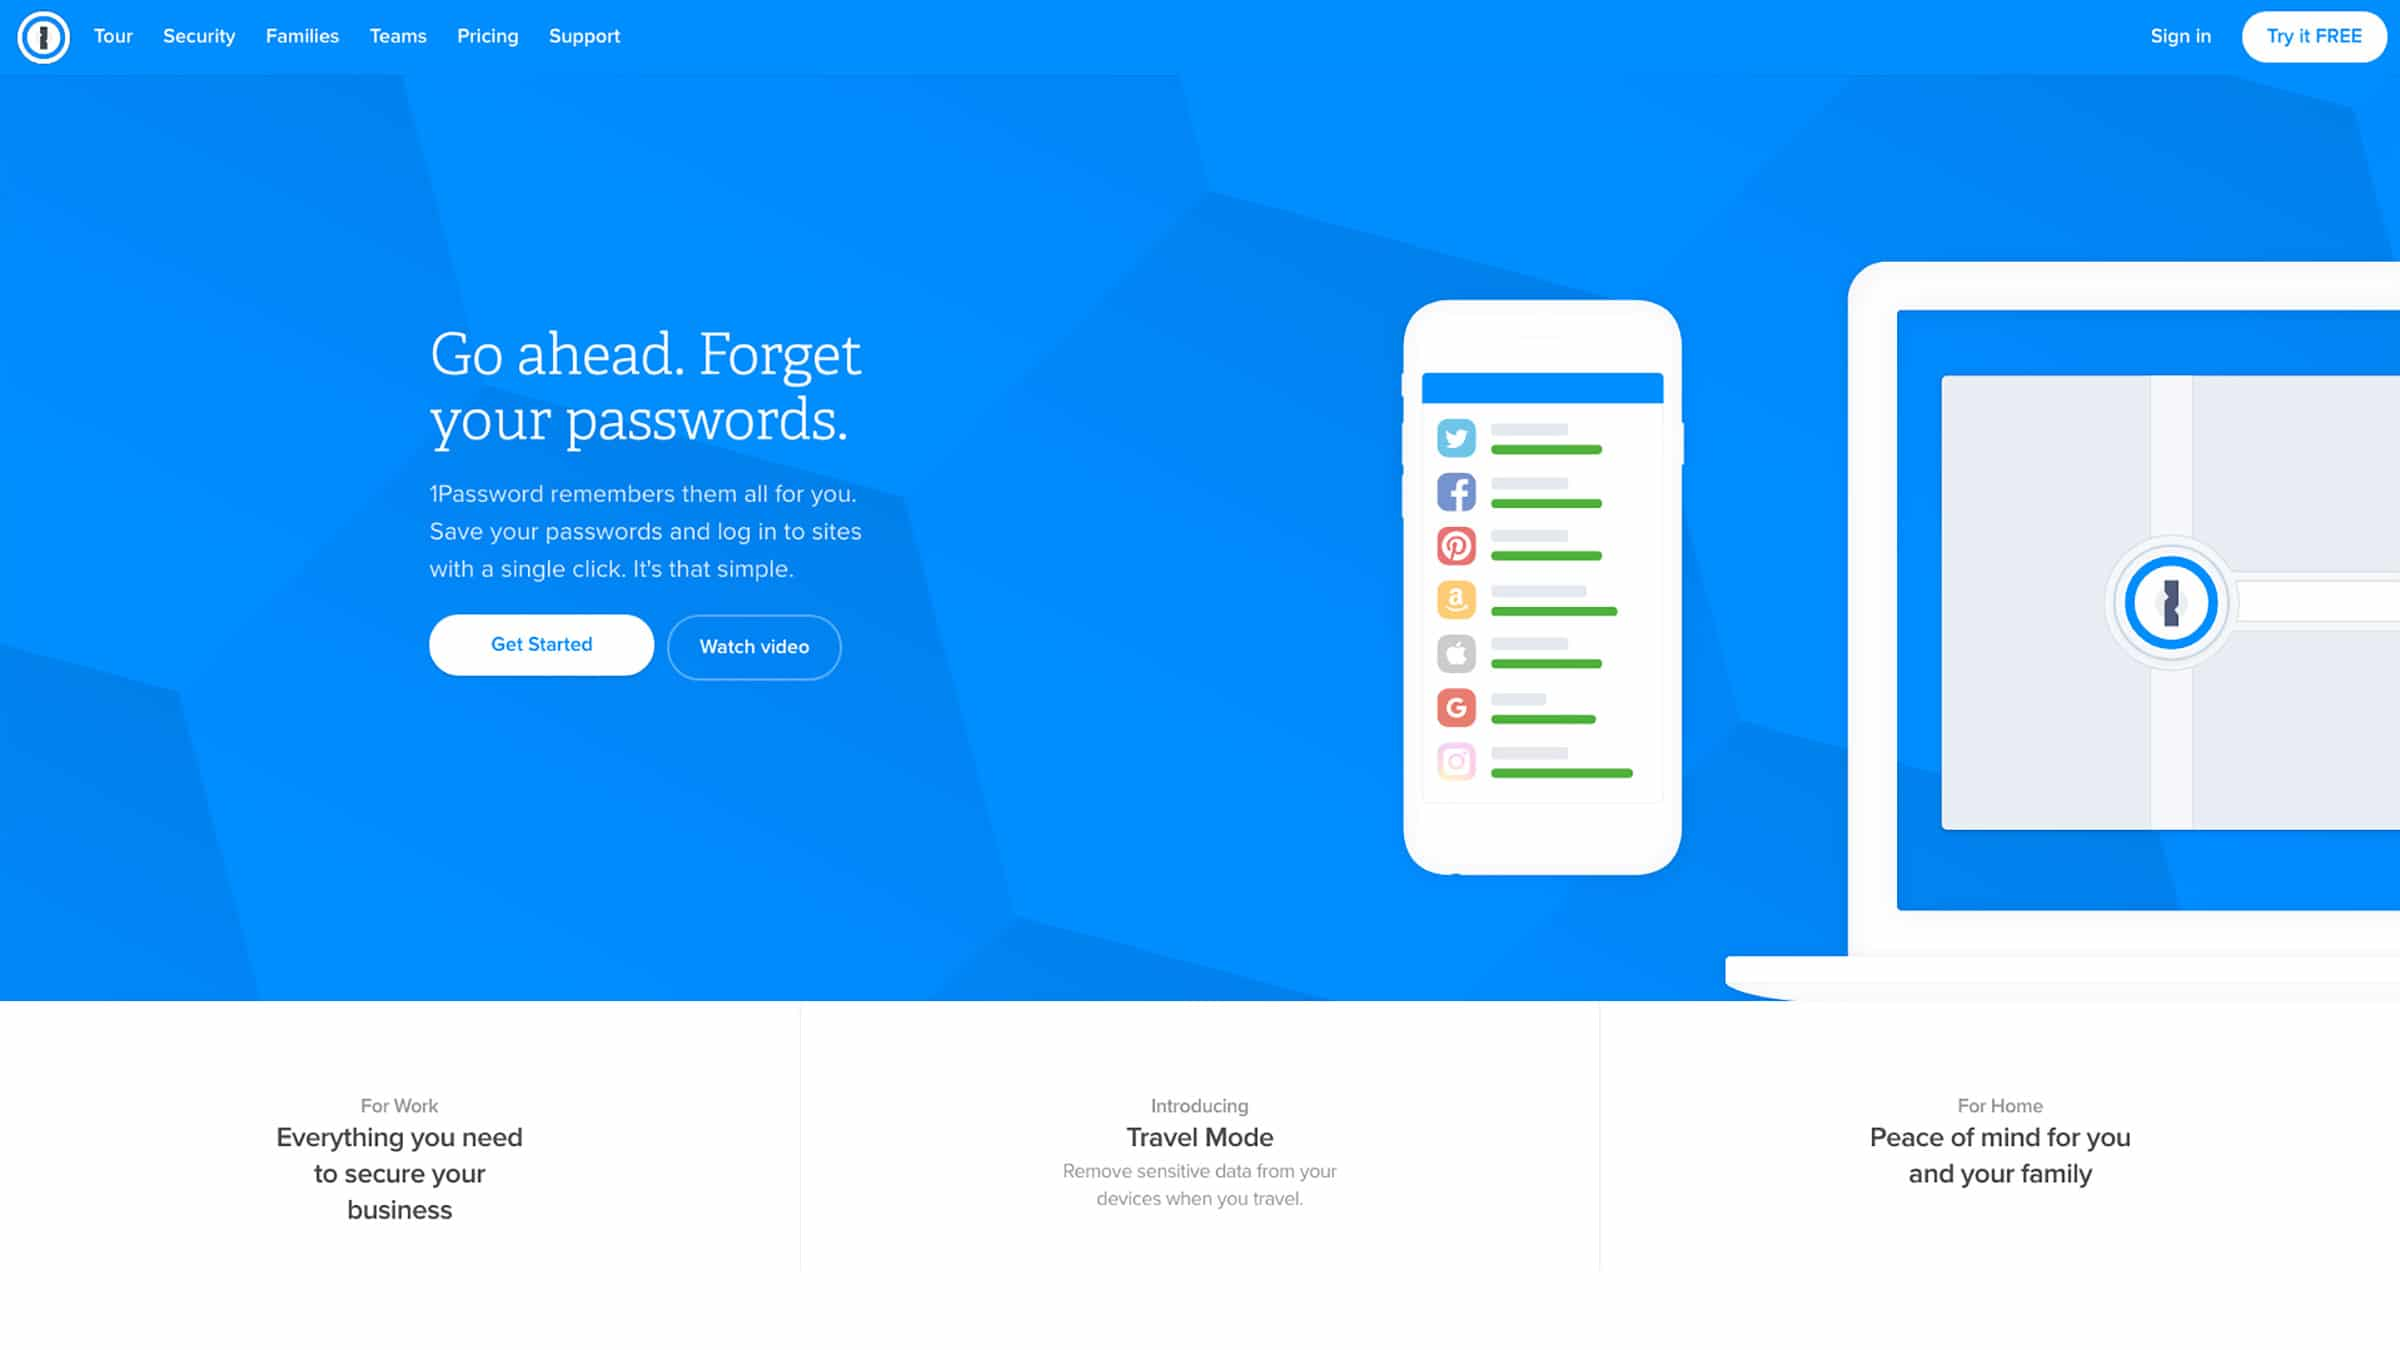 1Password is updated with more reasons to choose it as a password manager